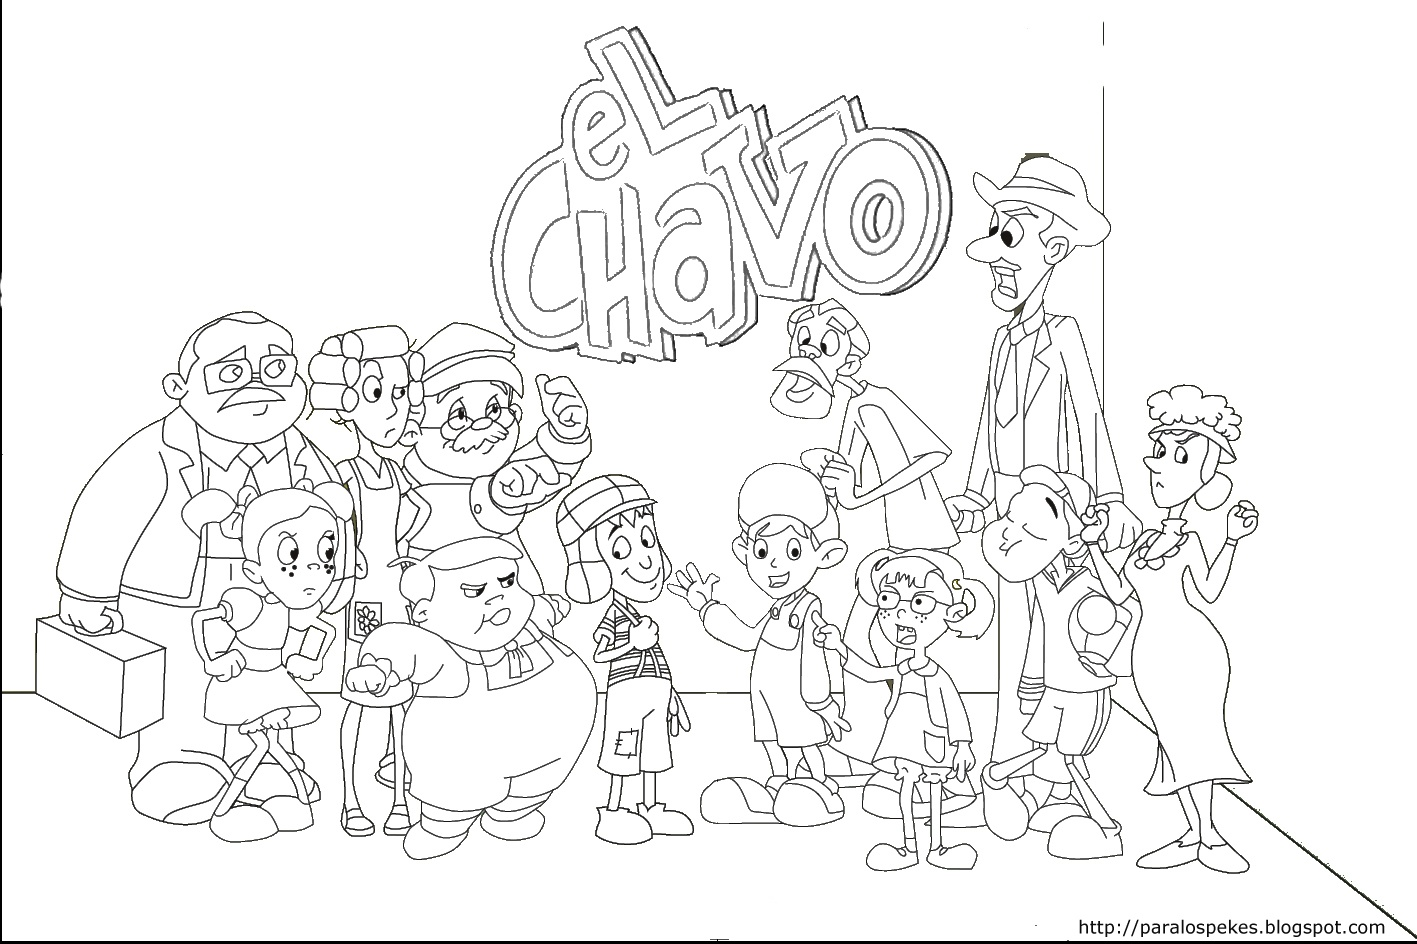 Chavo Del 8 Coloring Pages Coloring Pages